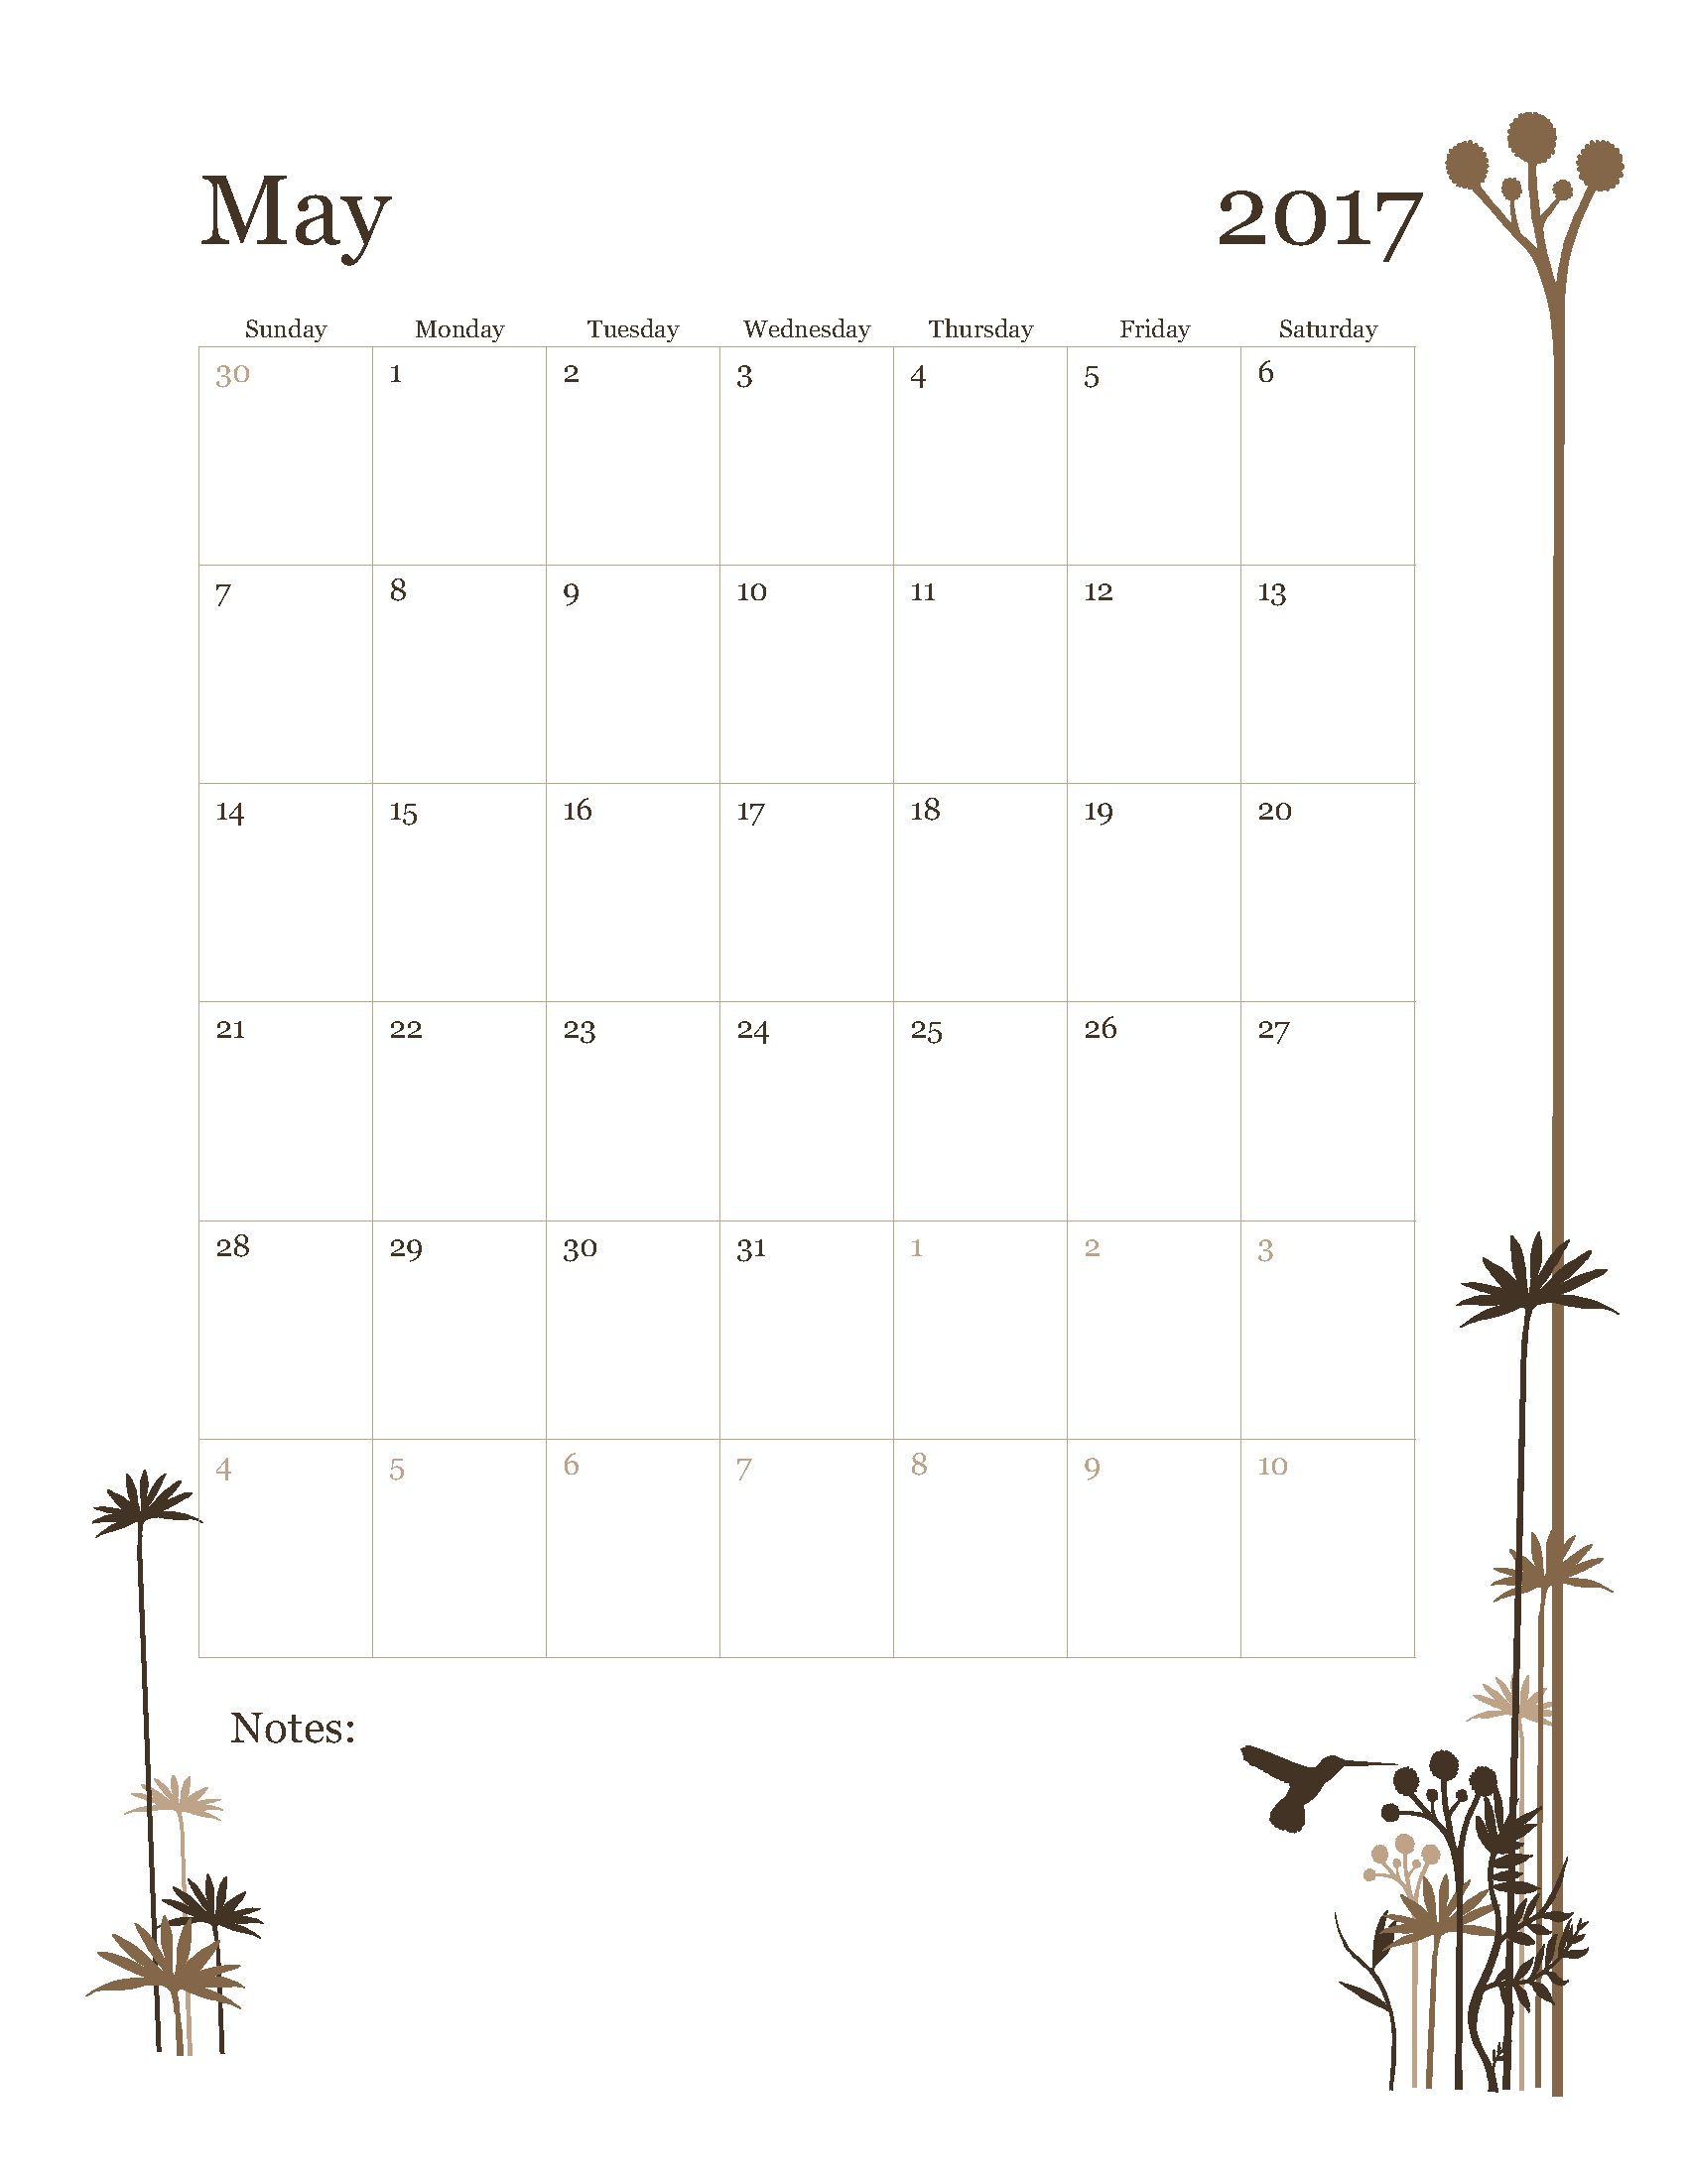 Free May 2017 Calendar Template Printable Start on Sunday - HummingBird design